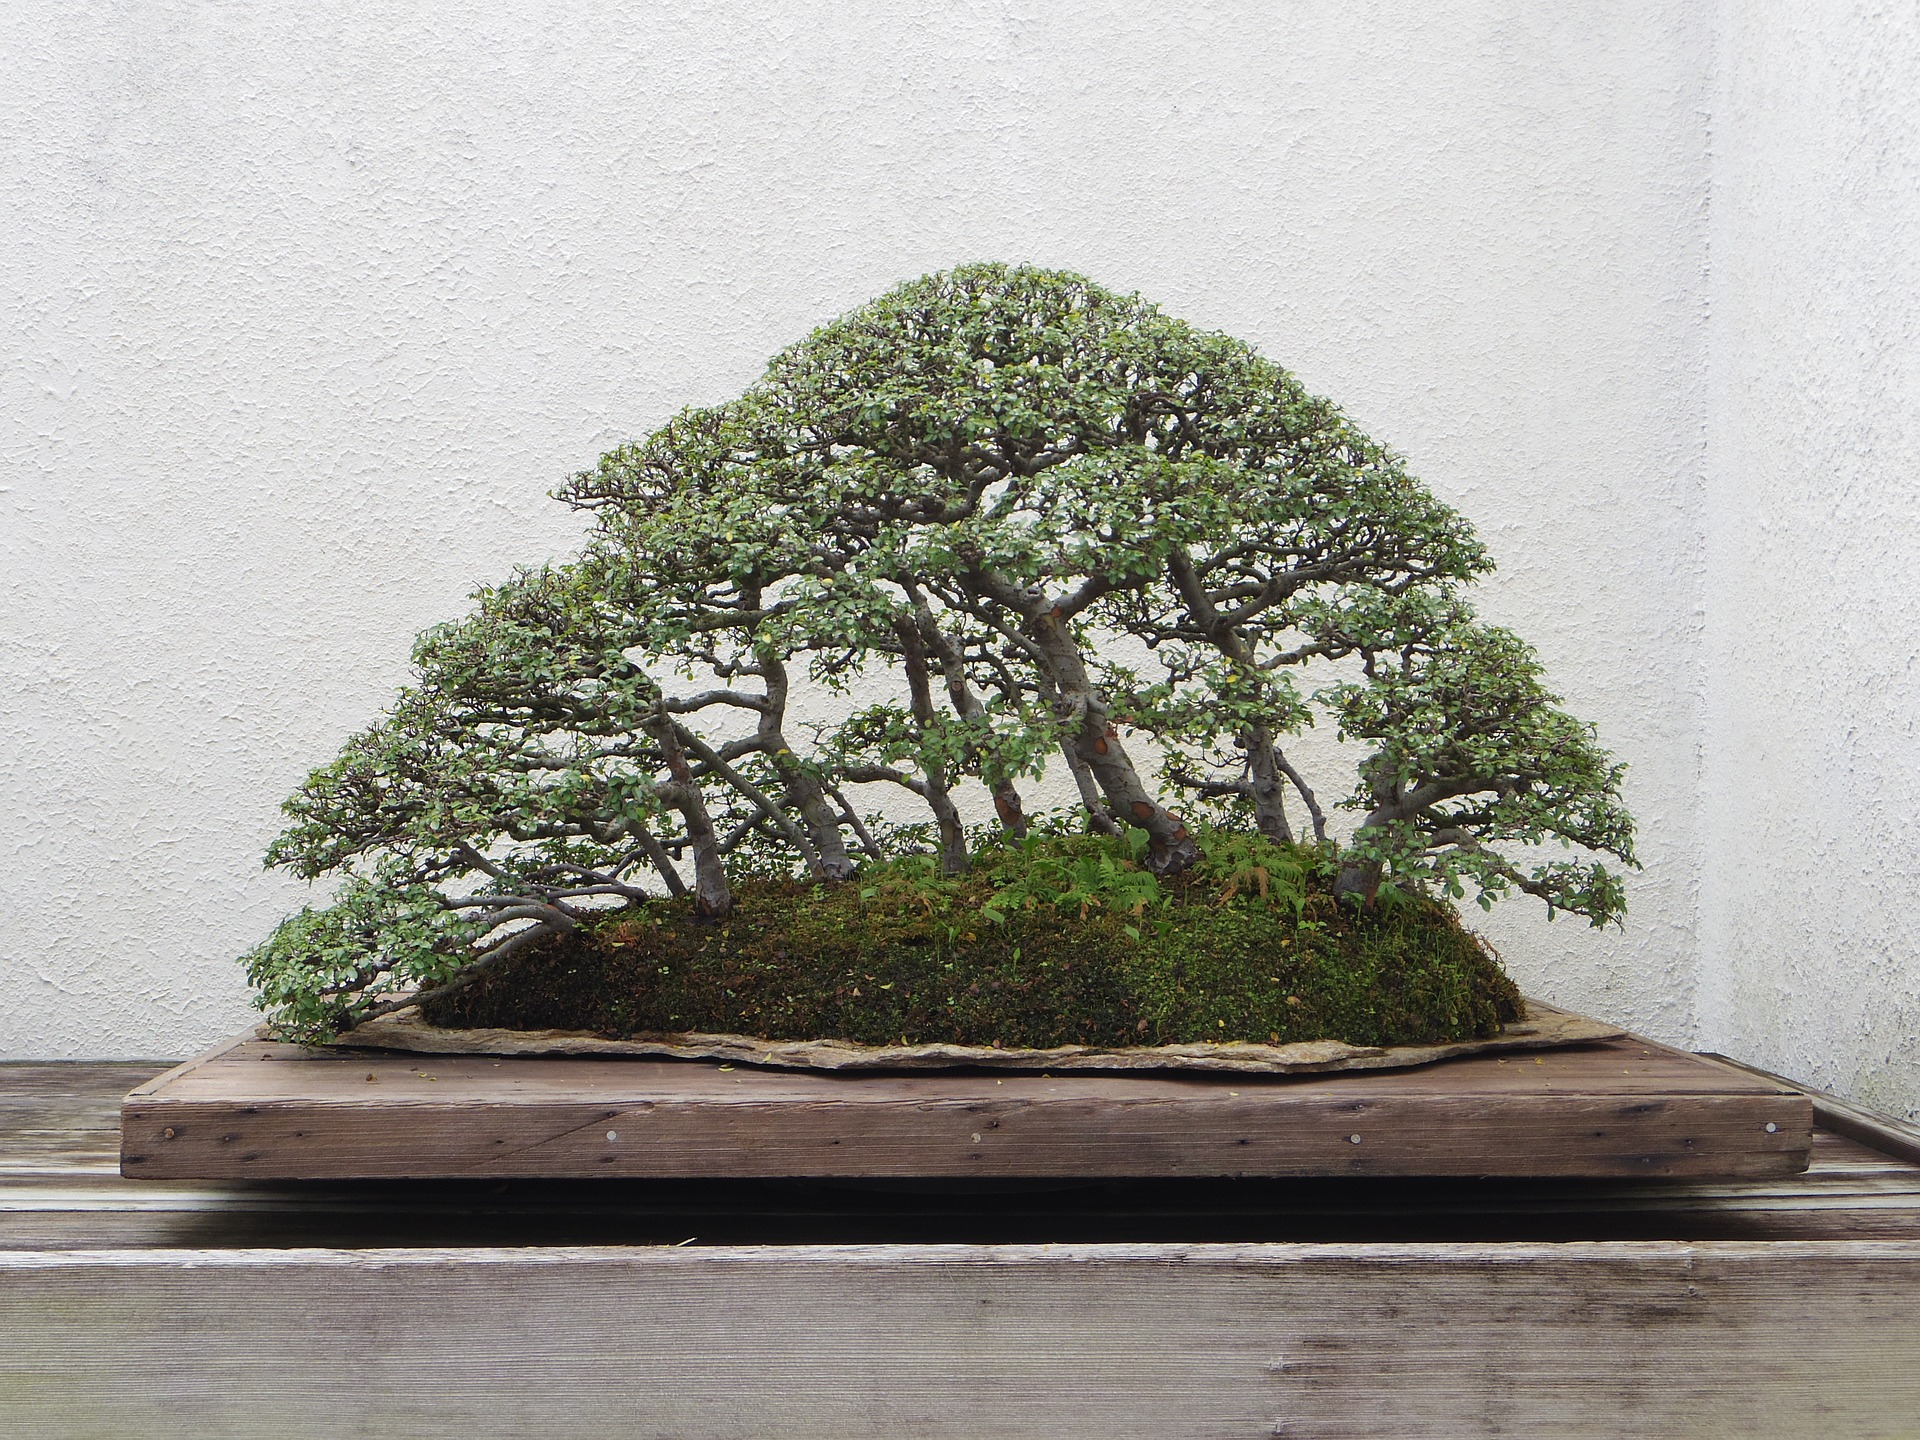 Bonsai tree on a wooden platform.